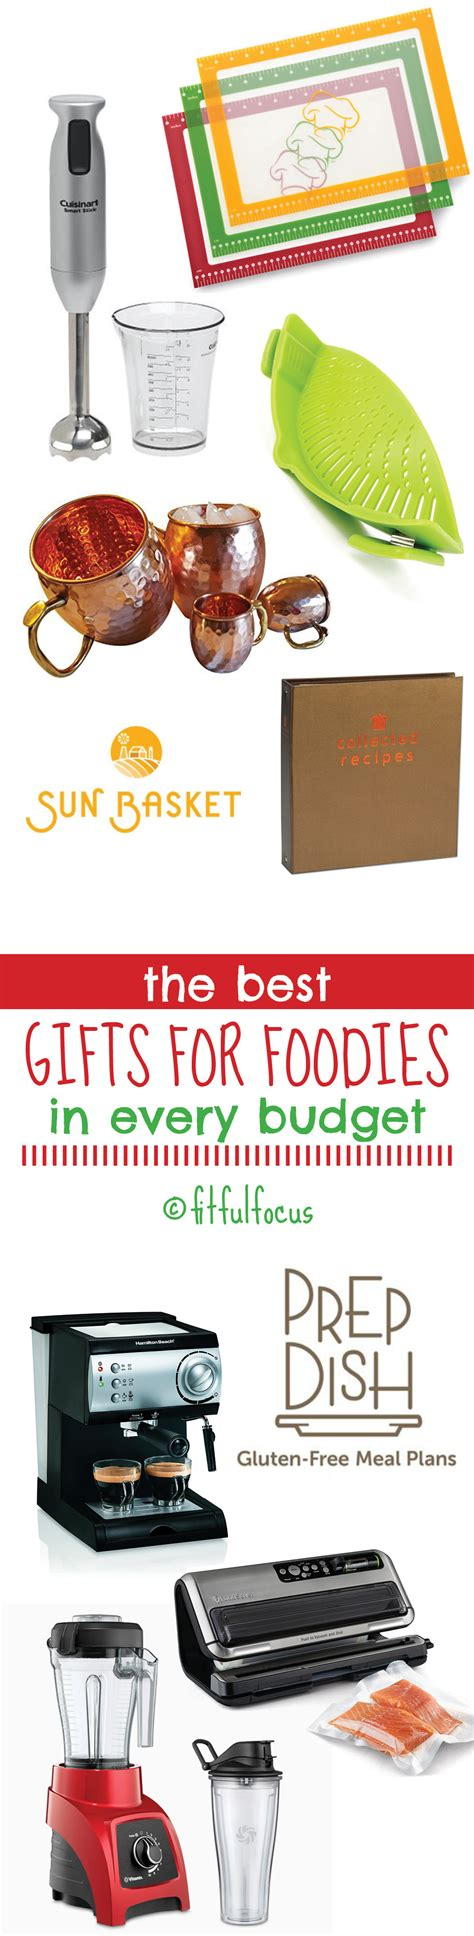 gifts for foodies the best gifts for foodies in every budget fitful focus